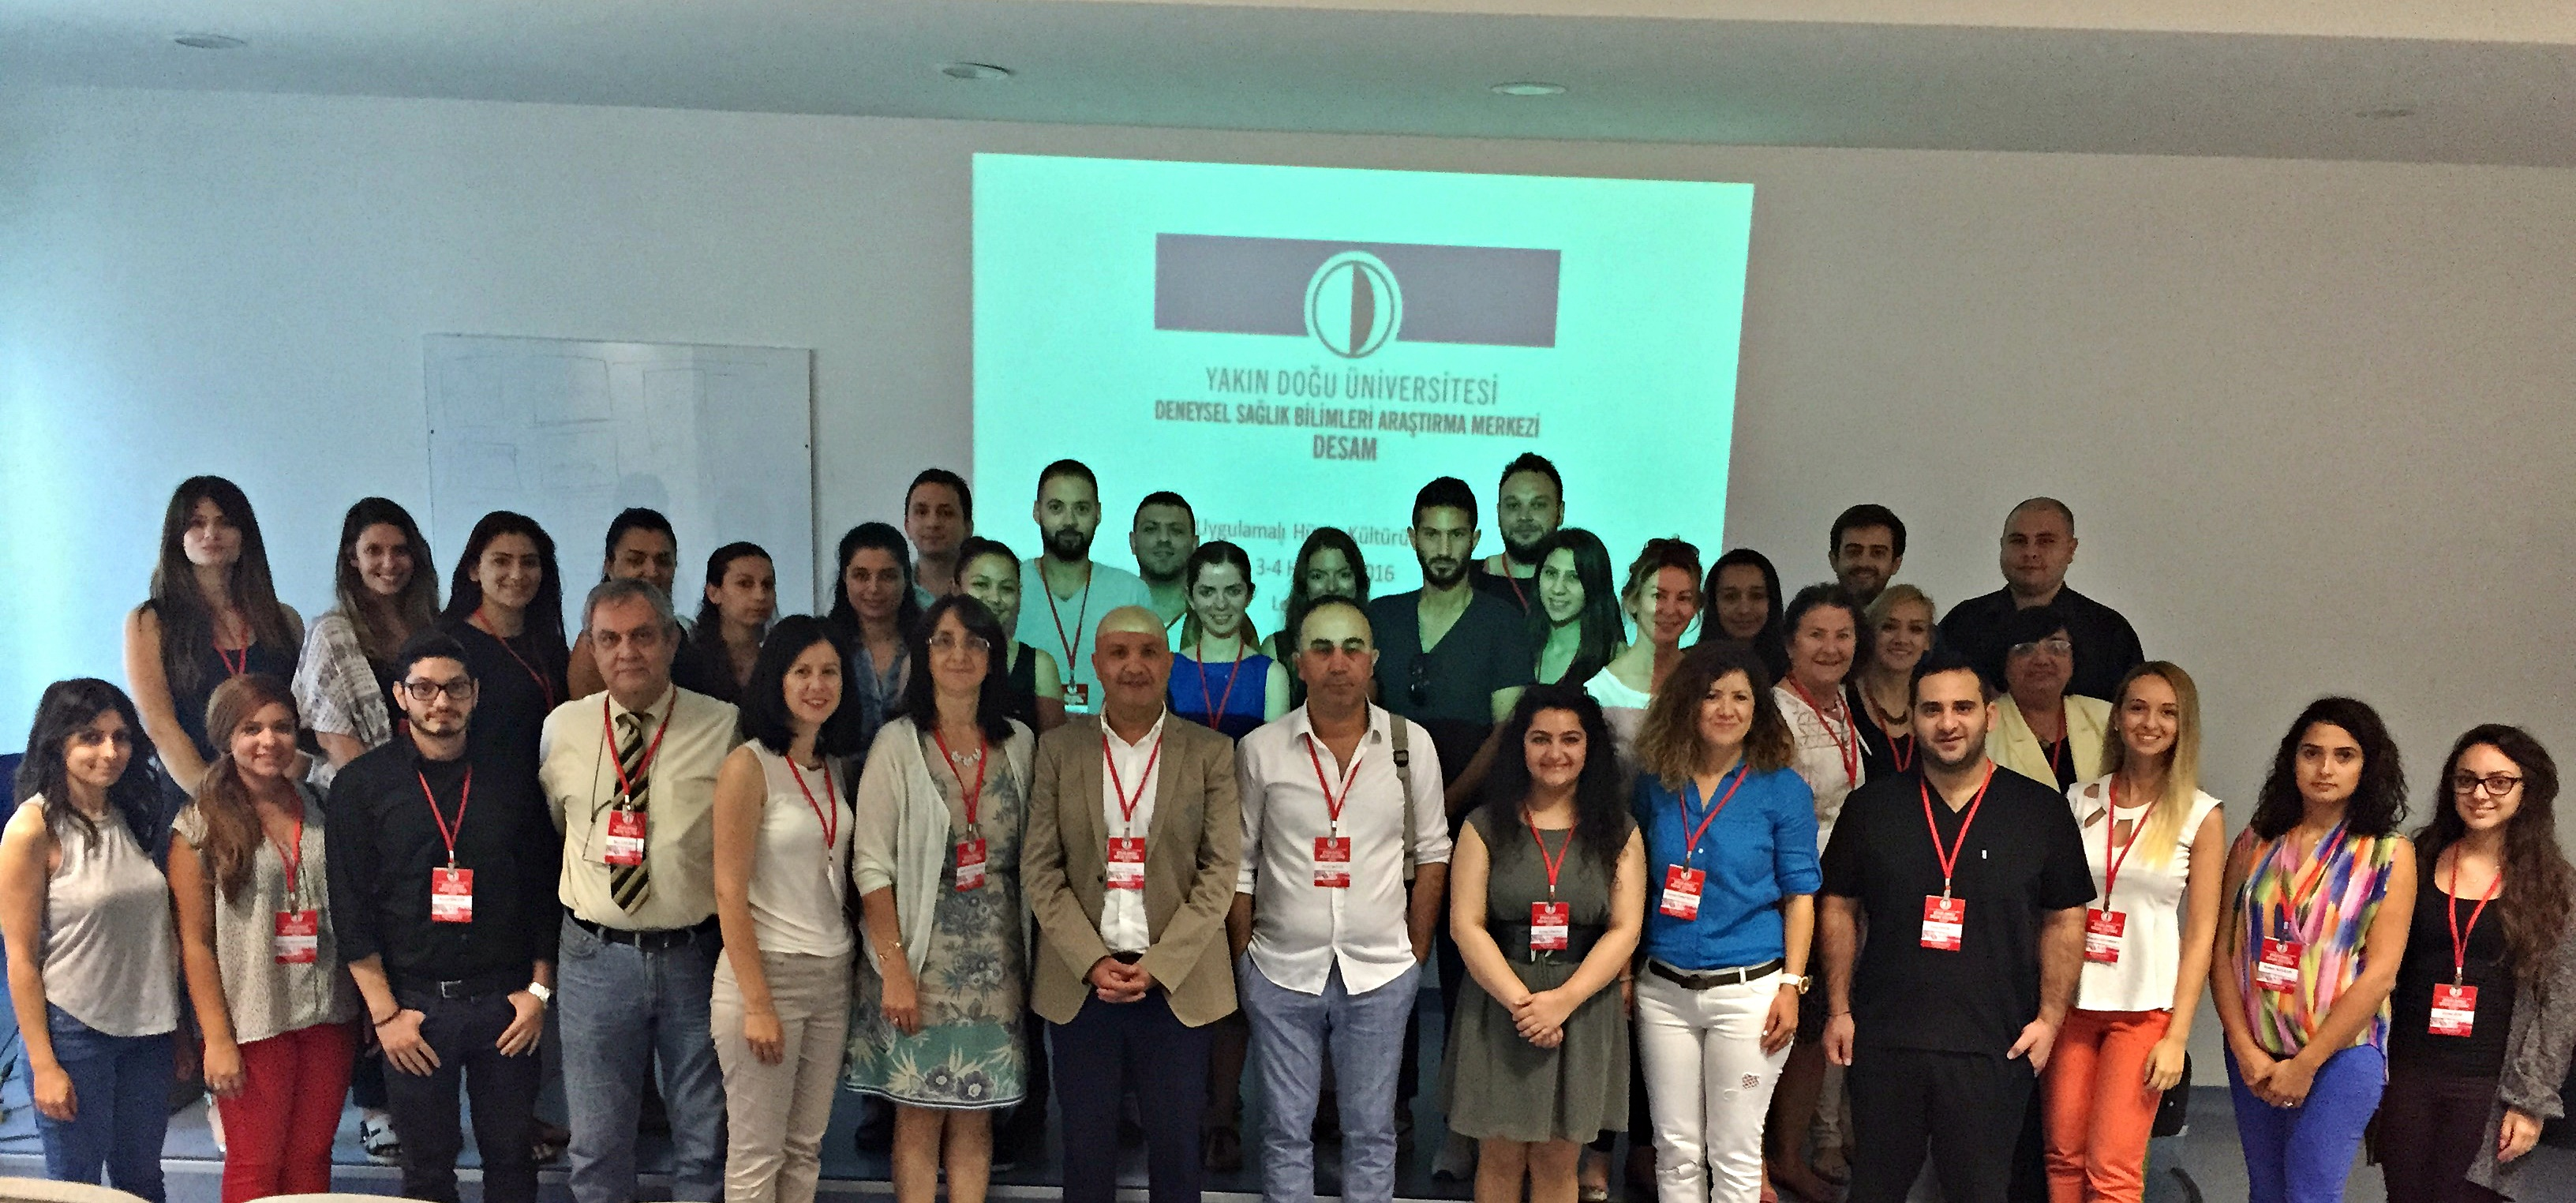 NEU Experimental Health Sciences Research Center (DESAM) held an applied course on cell culture